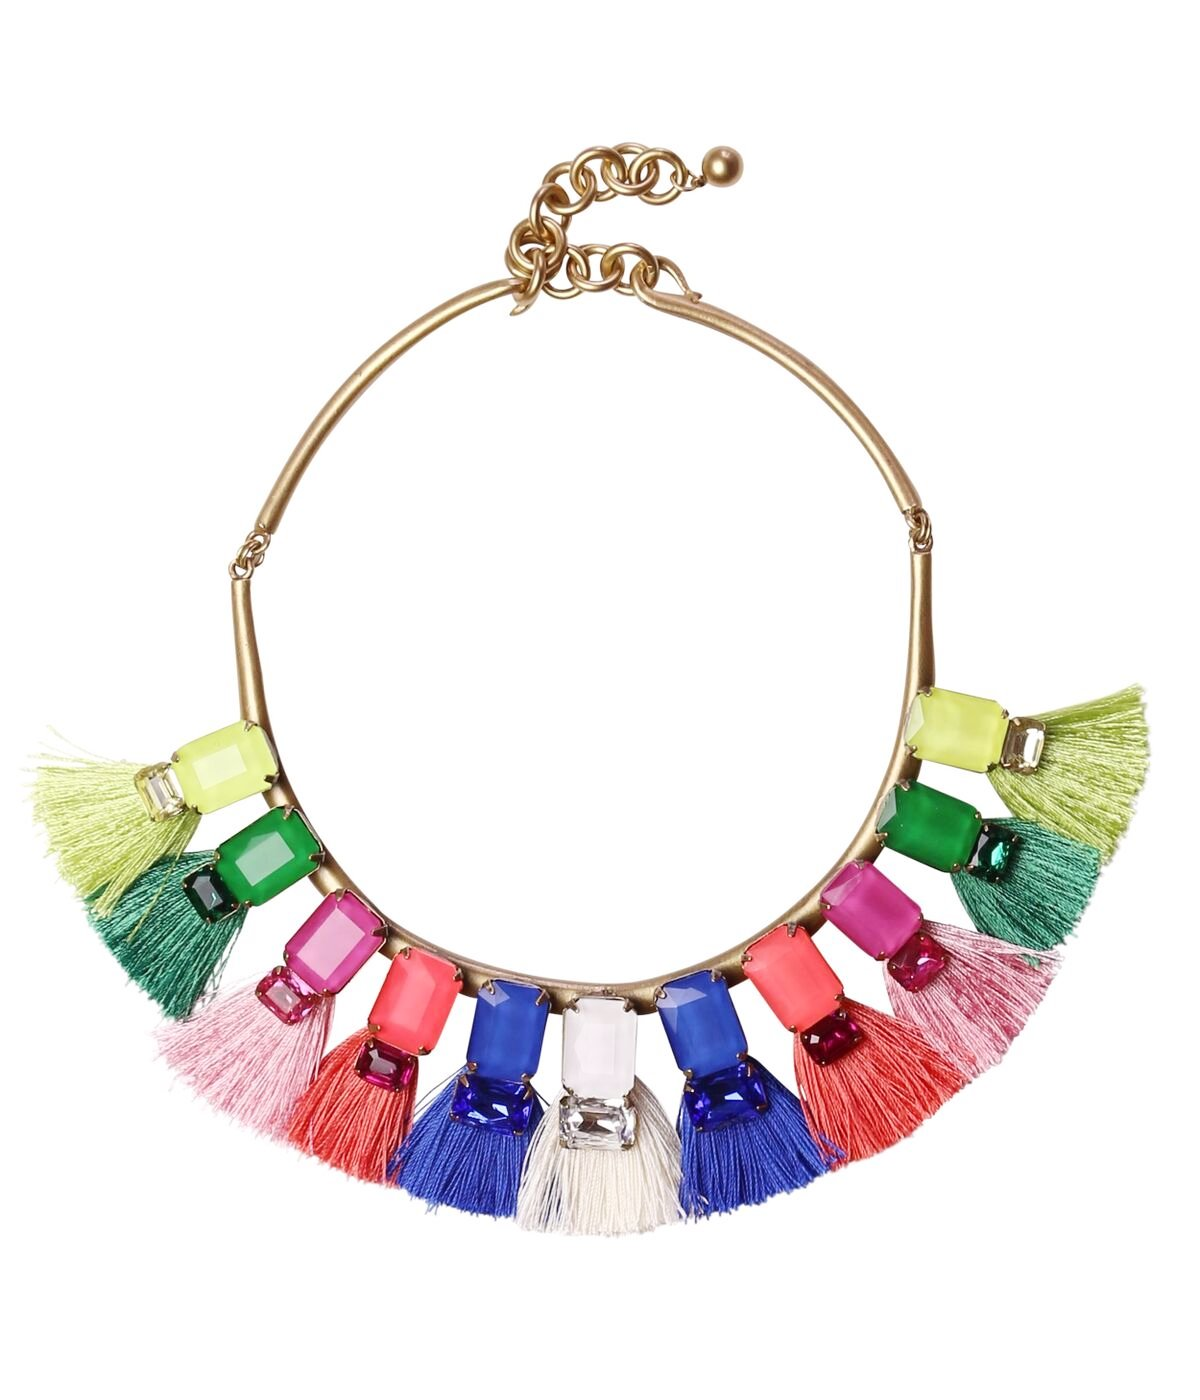 SCARLETT STATEMENT NECKLACE IN MULTI